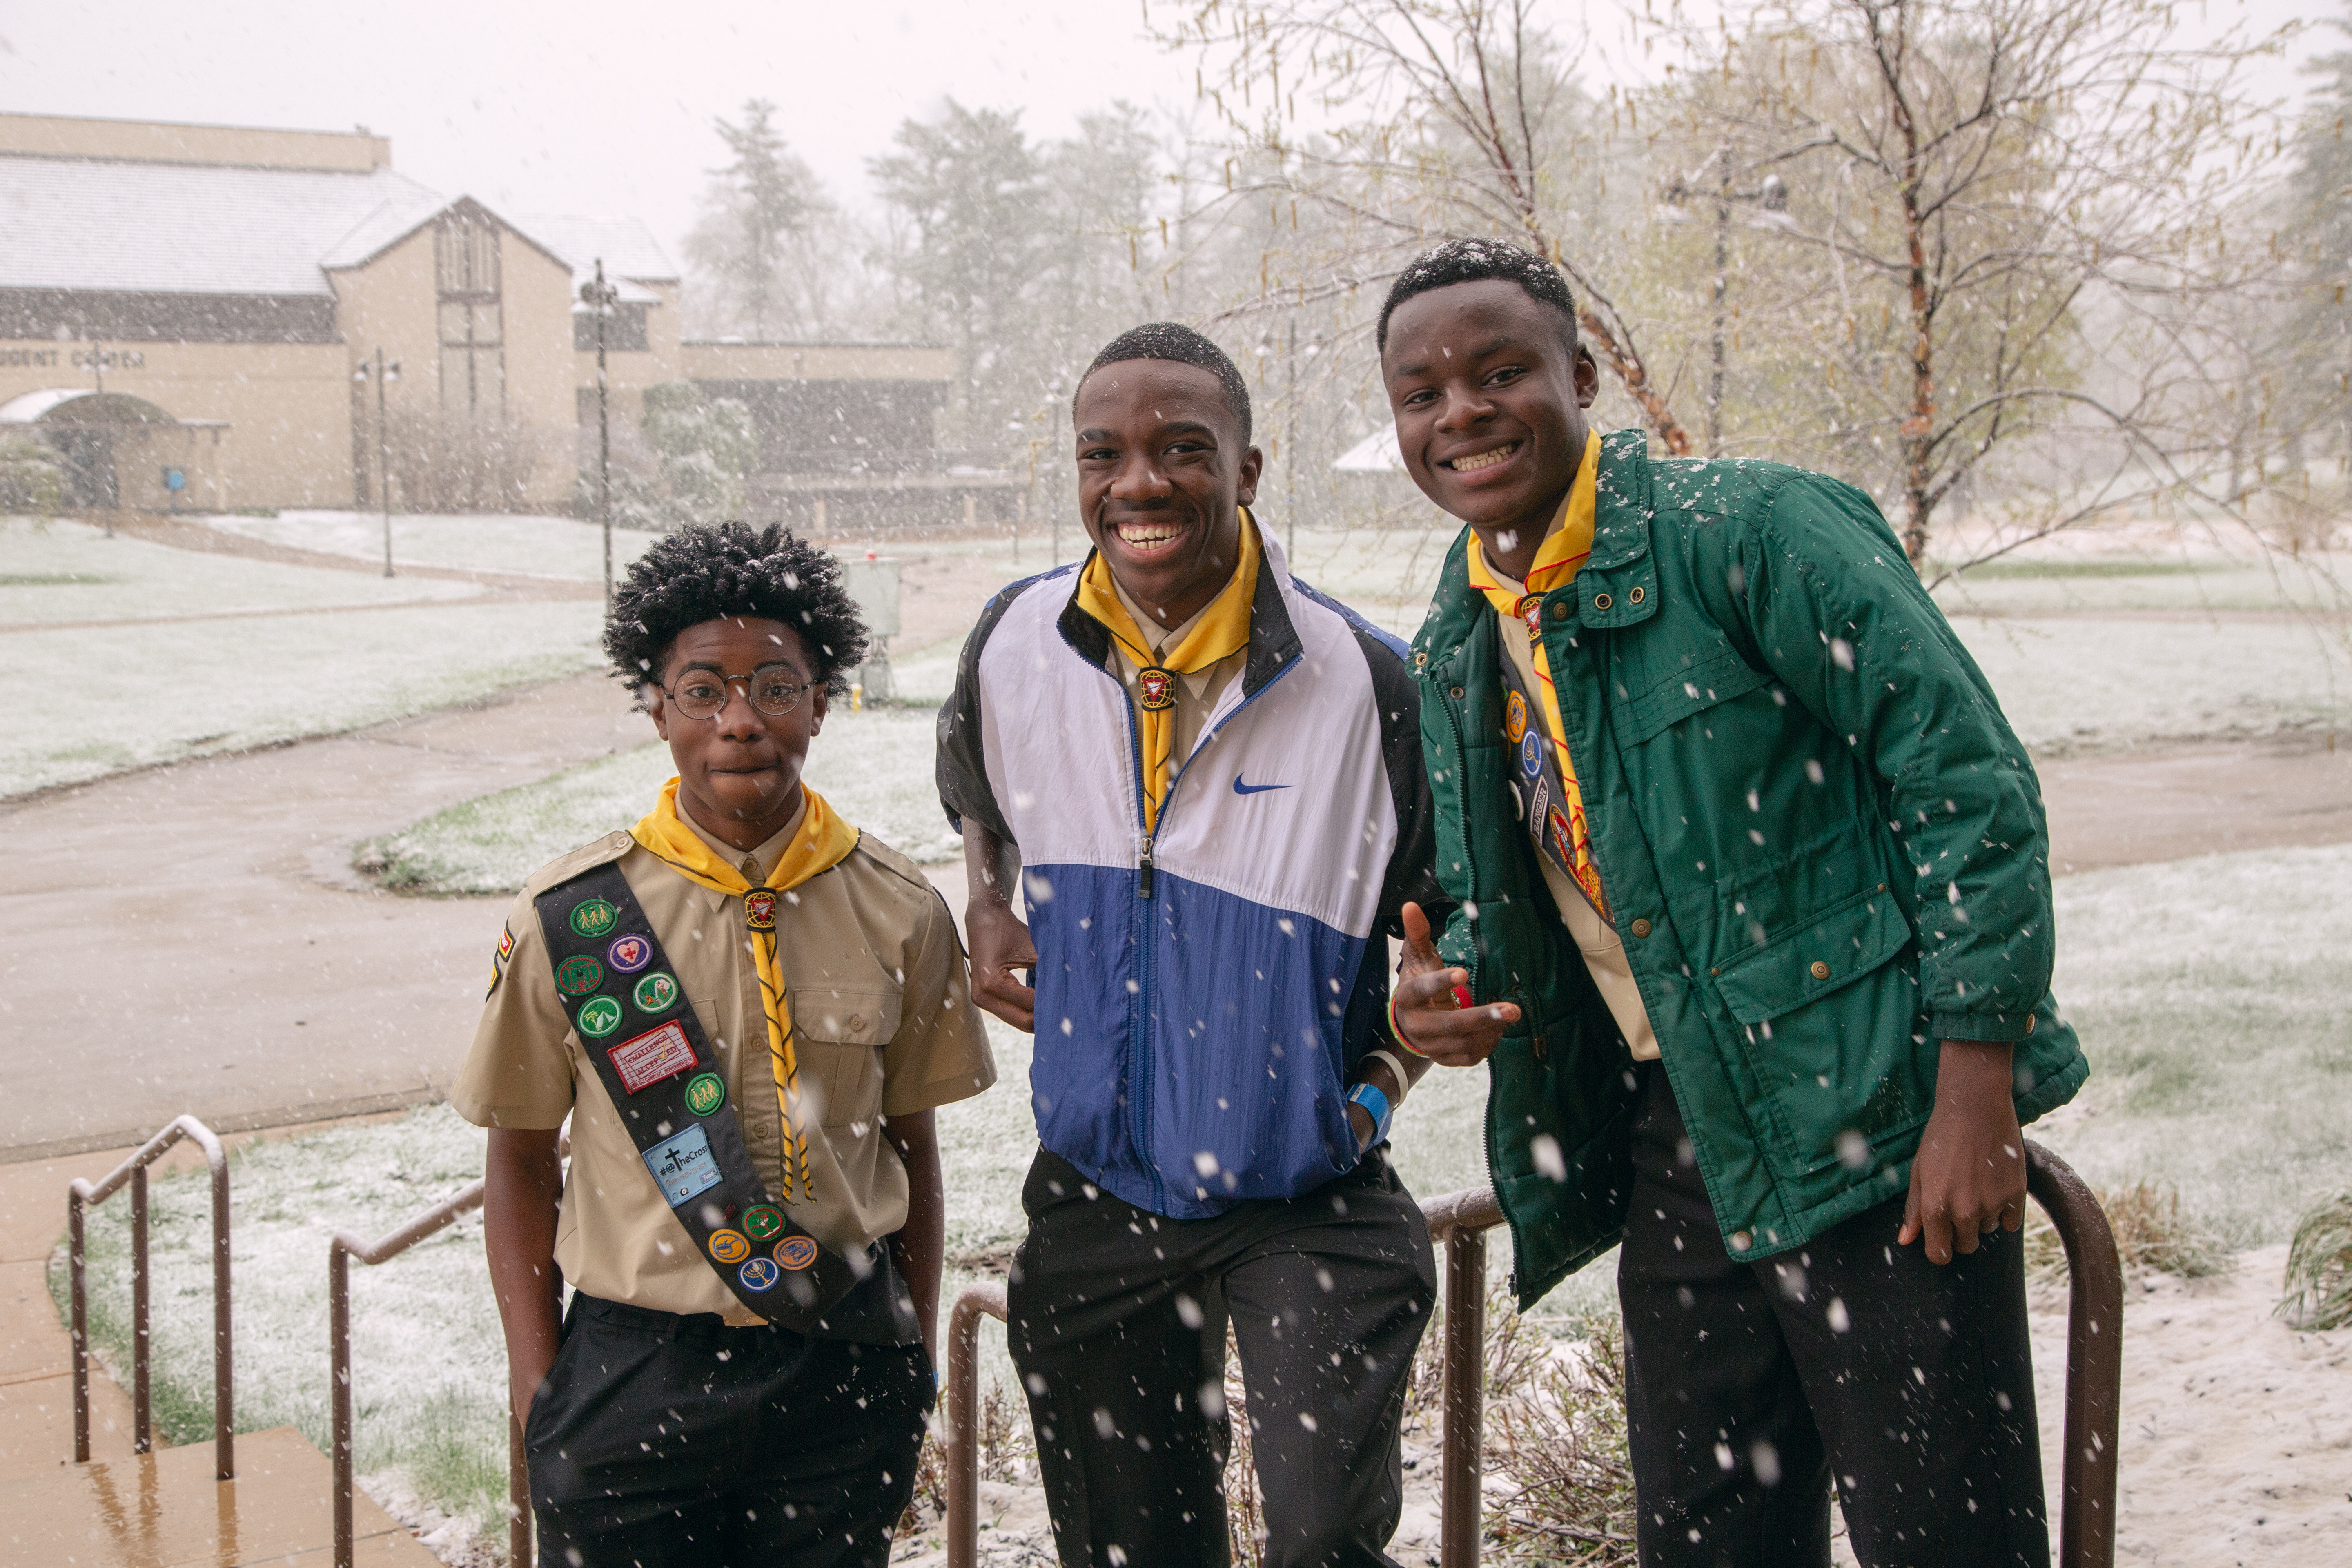 Group of friends pose in the snow outside the auditorium, a welcomed sight for Pathfinders from parts of the country that rarely experience snow.